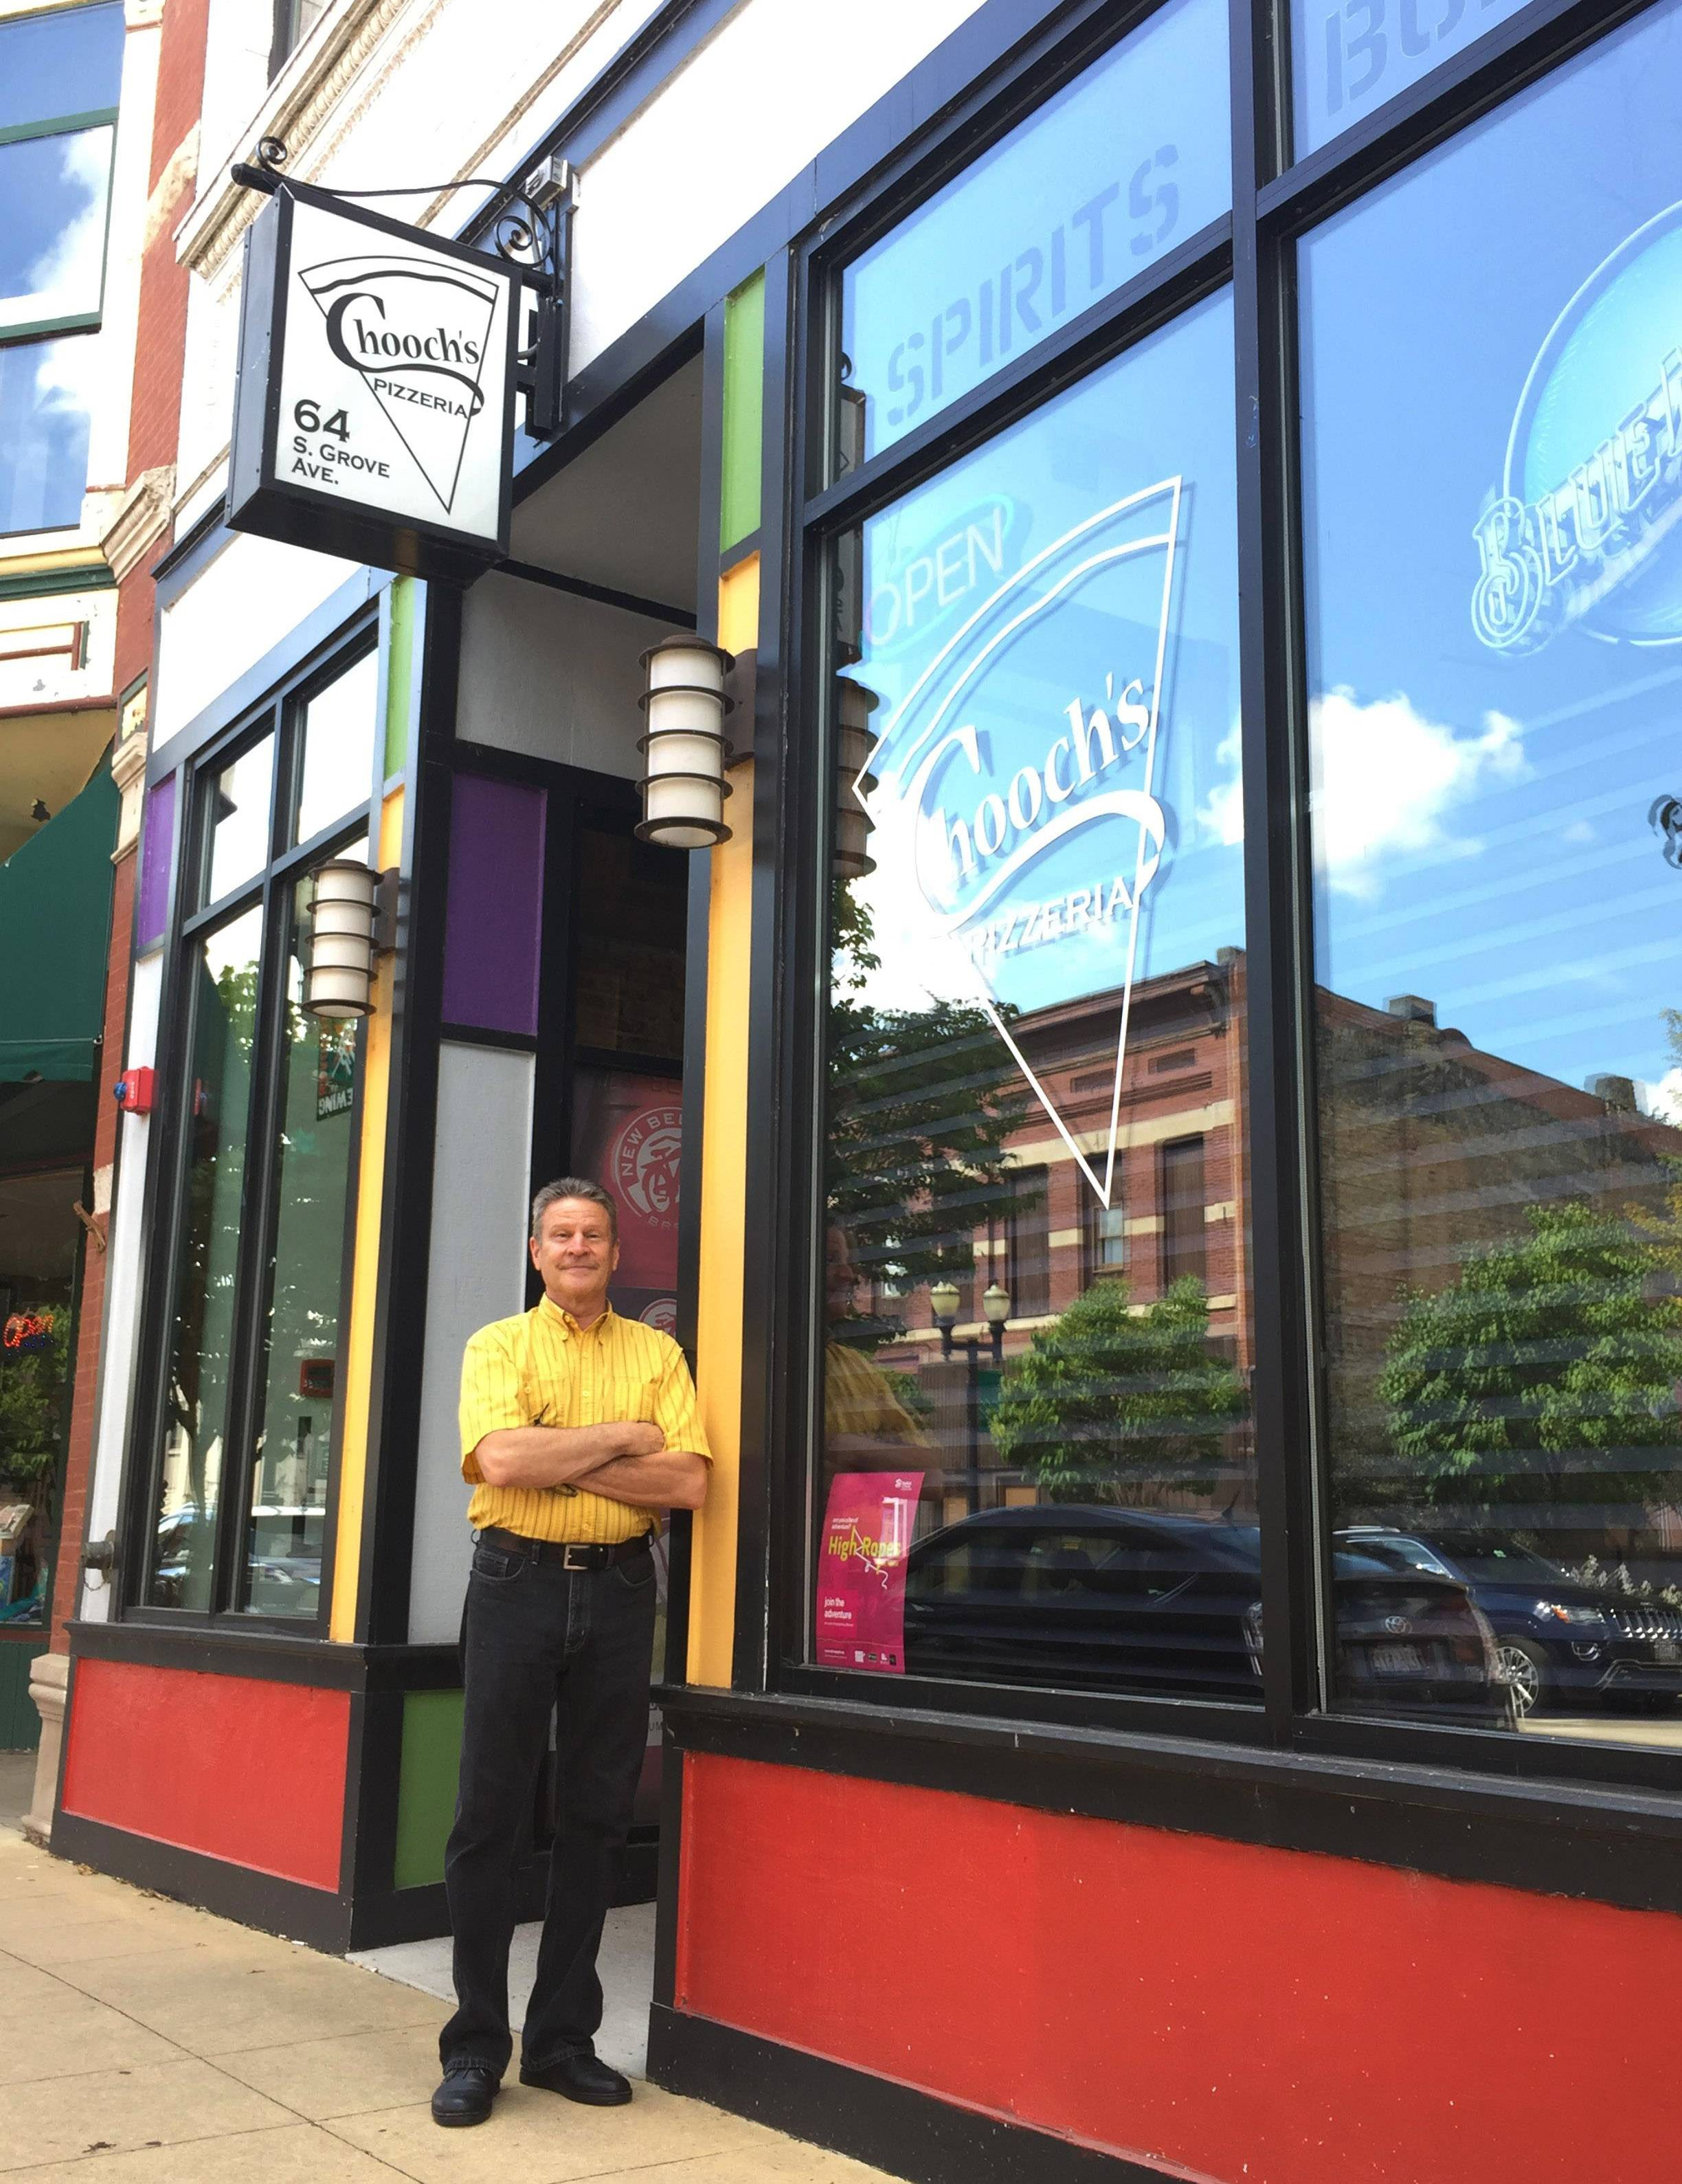 Mike Butirro, co-owner of Chooch's Pizzeria in downtown Elgin, decided to close but waited until all his employees found a new job.